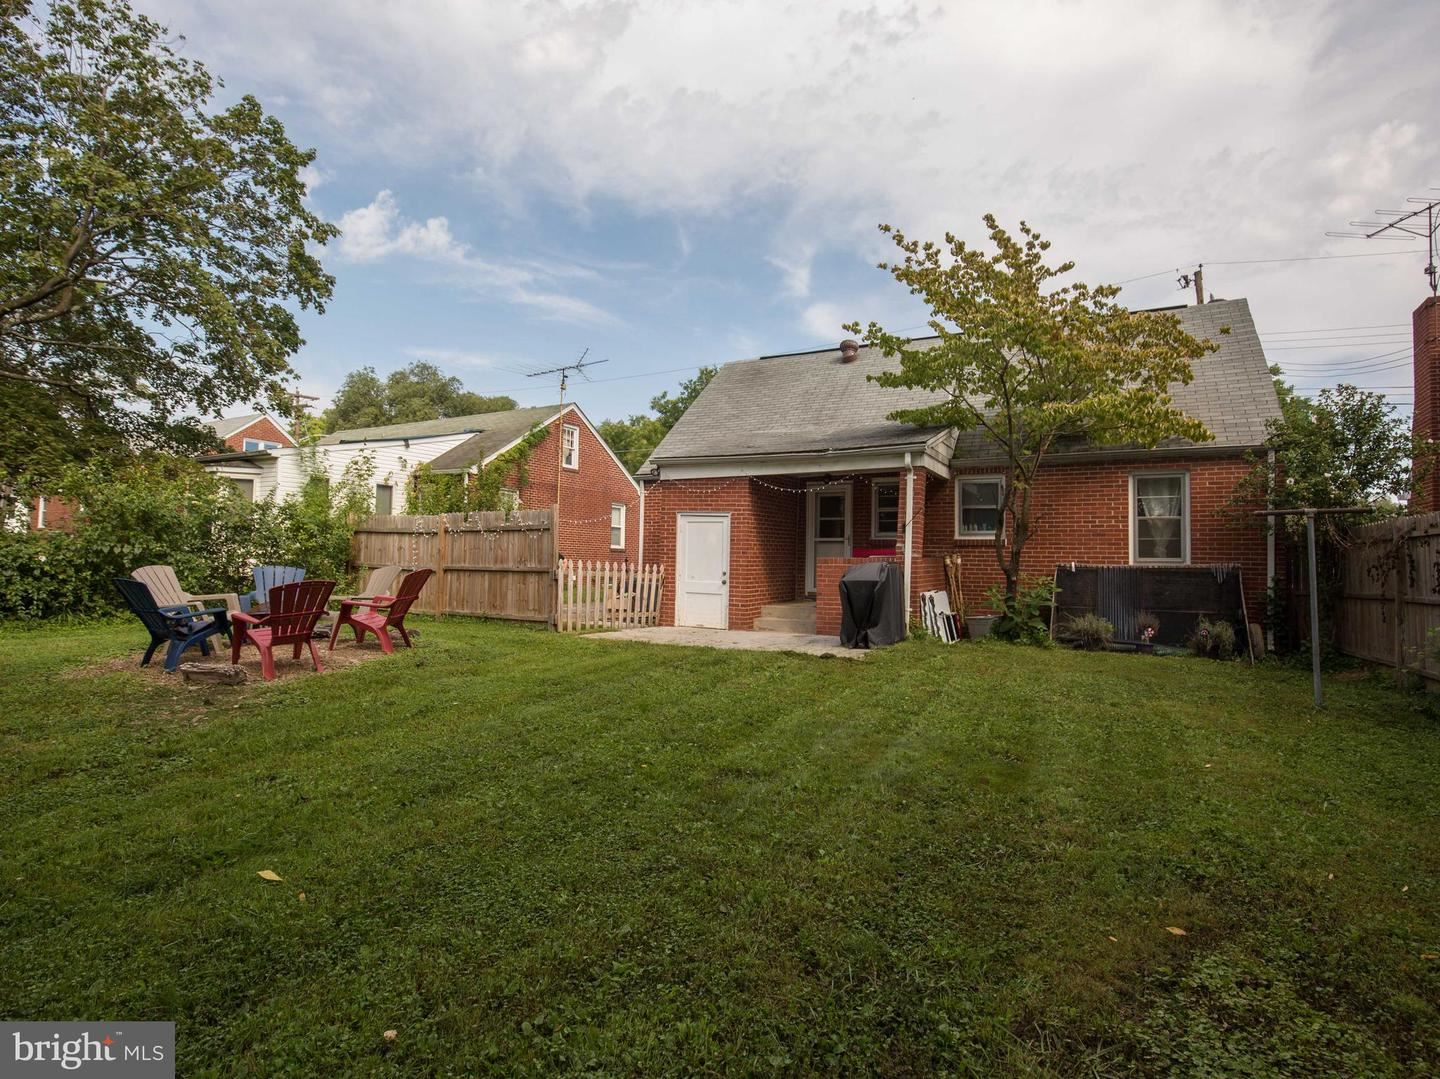 121 BELLVIEW AVE, Winchester, VA 22601 - #: VAWI114040